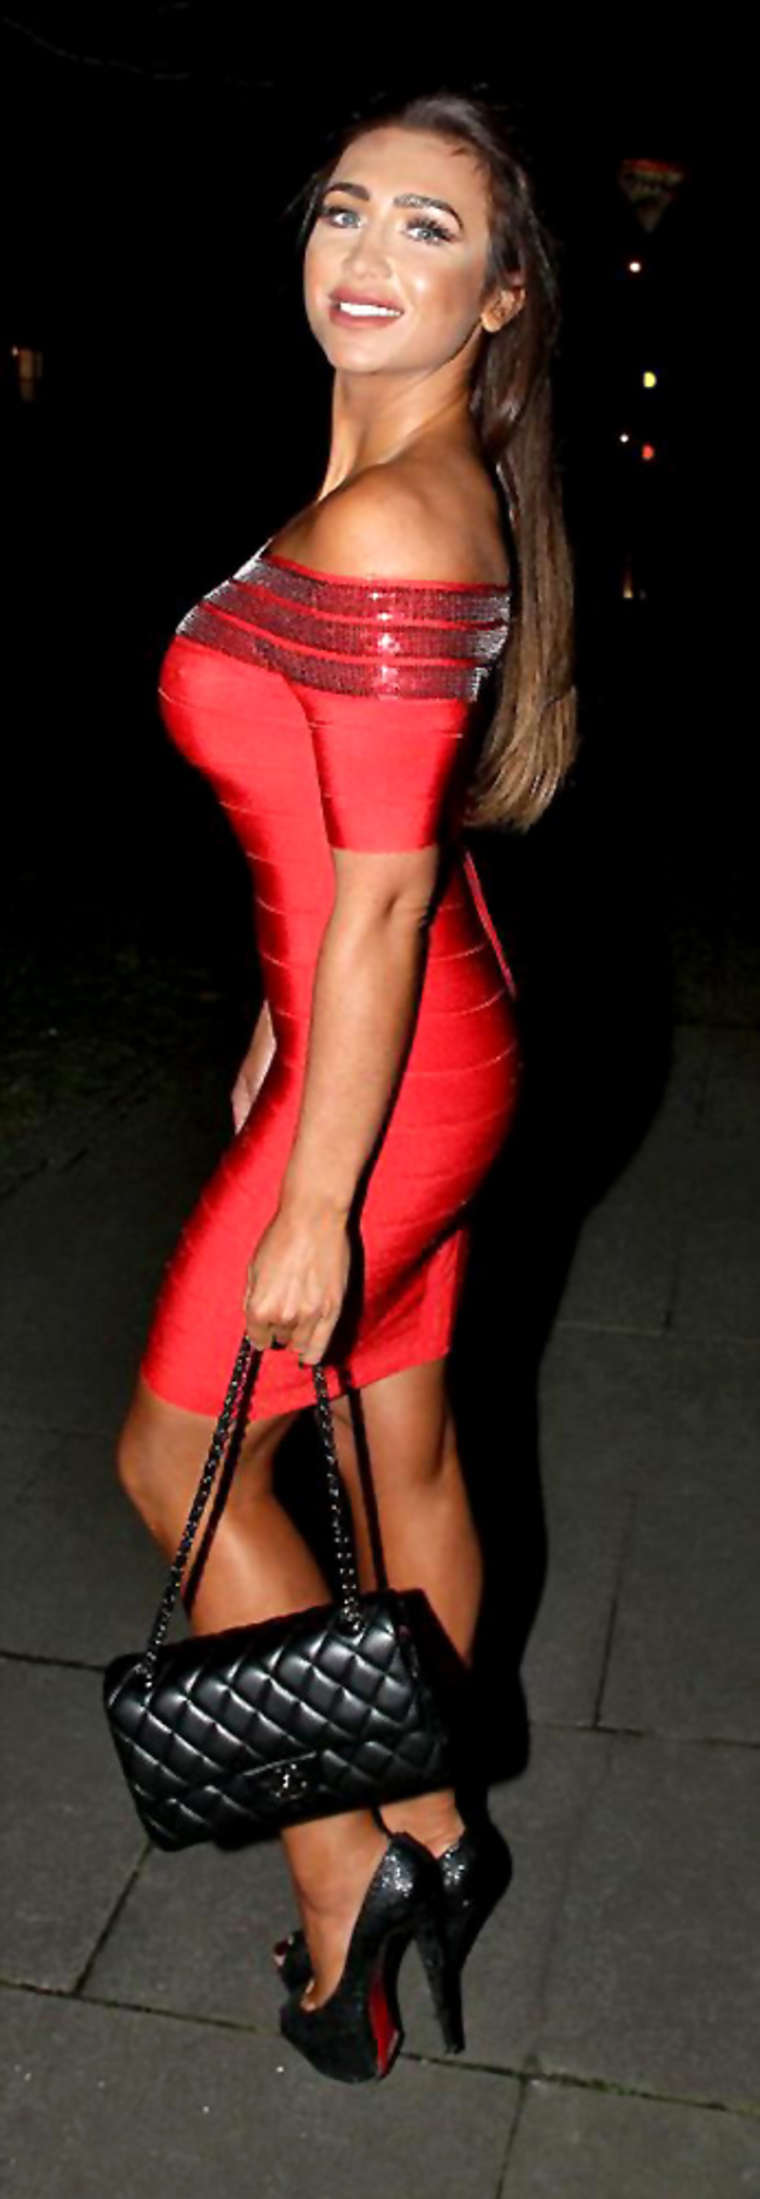 Lauren Goodger In Red Tight Dress Out In London Gotceleb